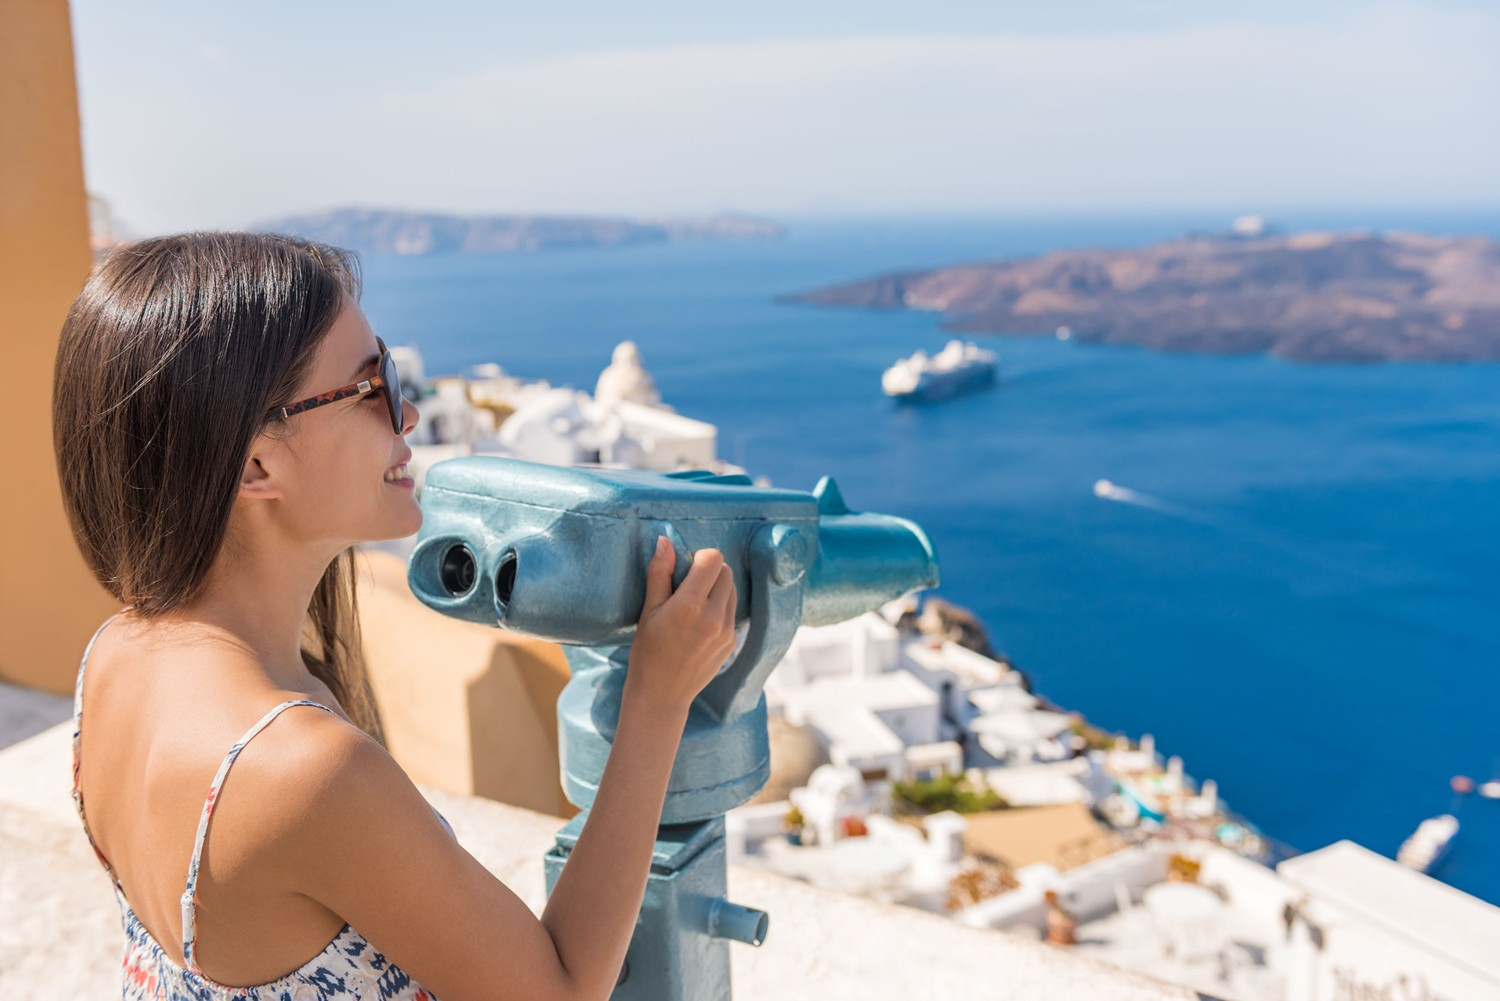 Greece Vacation and Cruise Packages from Chicago's #1 Travel Agency - Sunset Travel & Cruise, W Fullerton Ave 60614